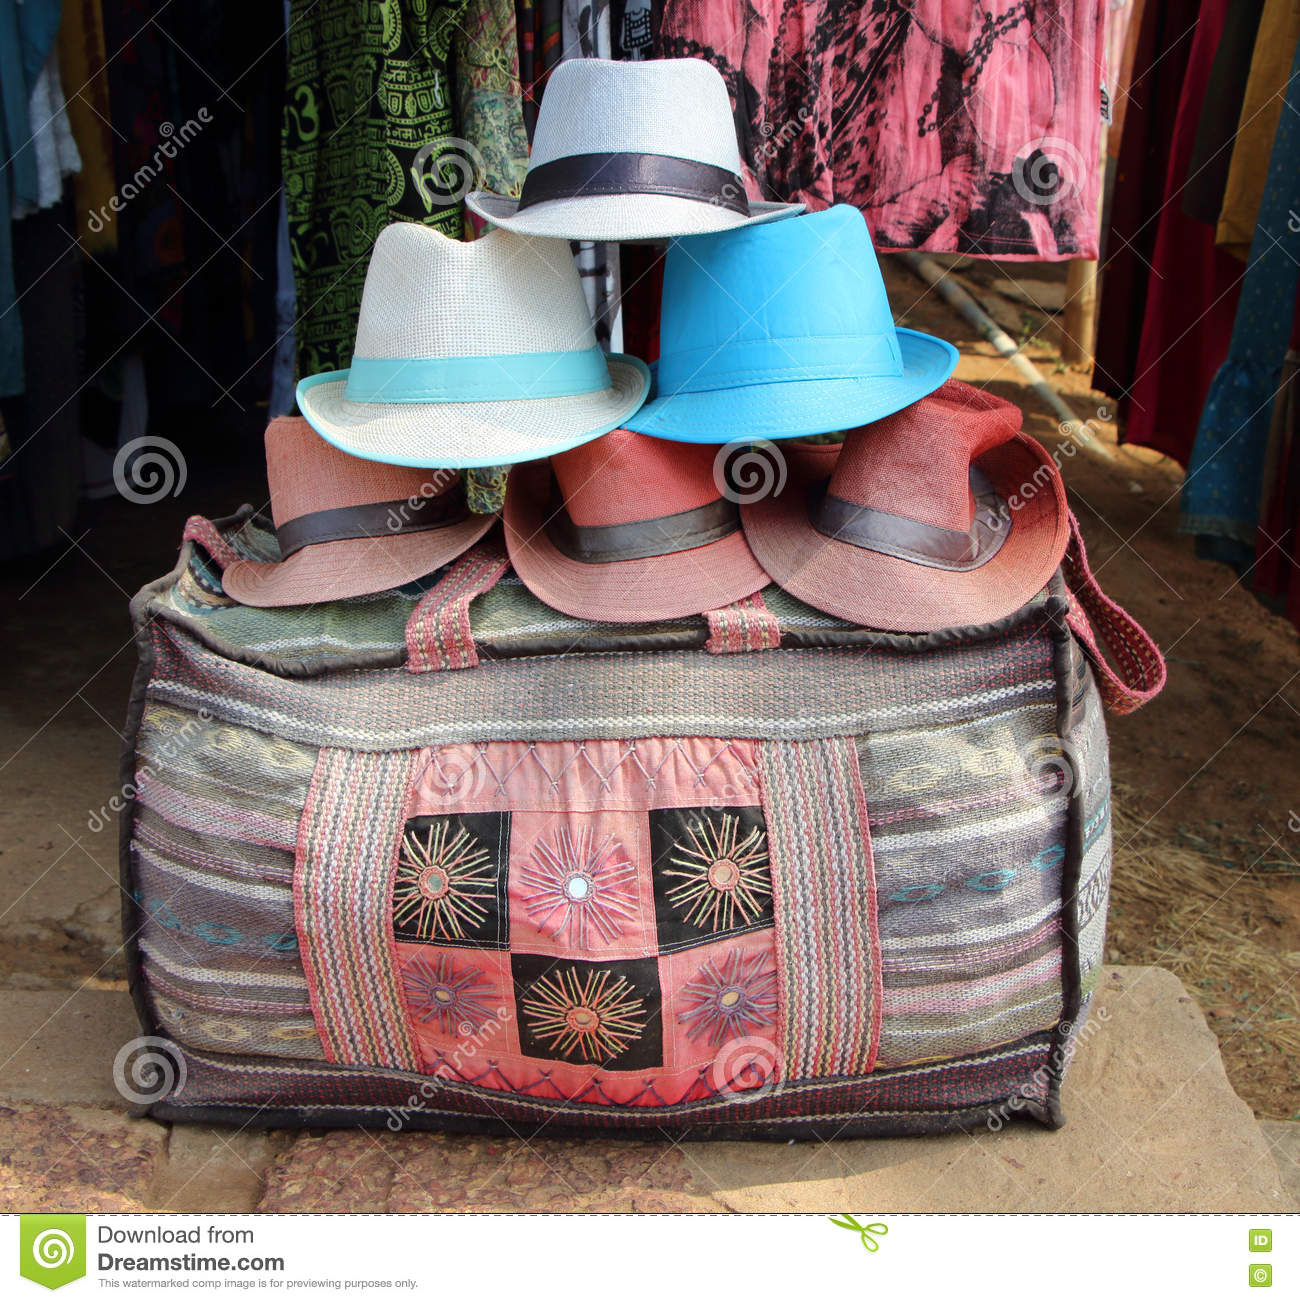 Cloth Bag And Hat In A Shop In South India Stock Image - Image of ... 0af0fdbe924